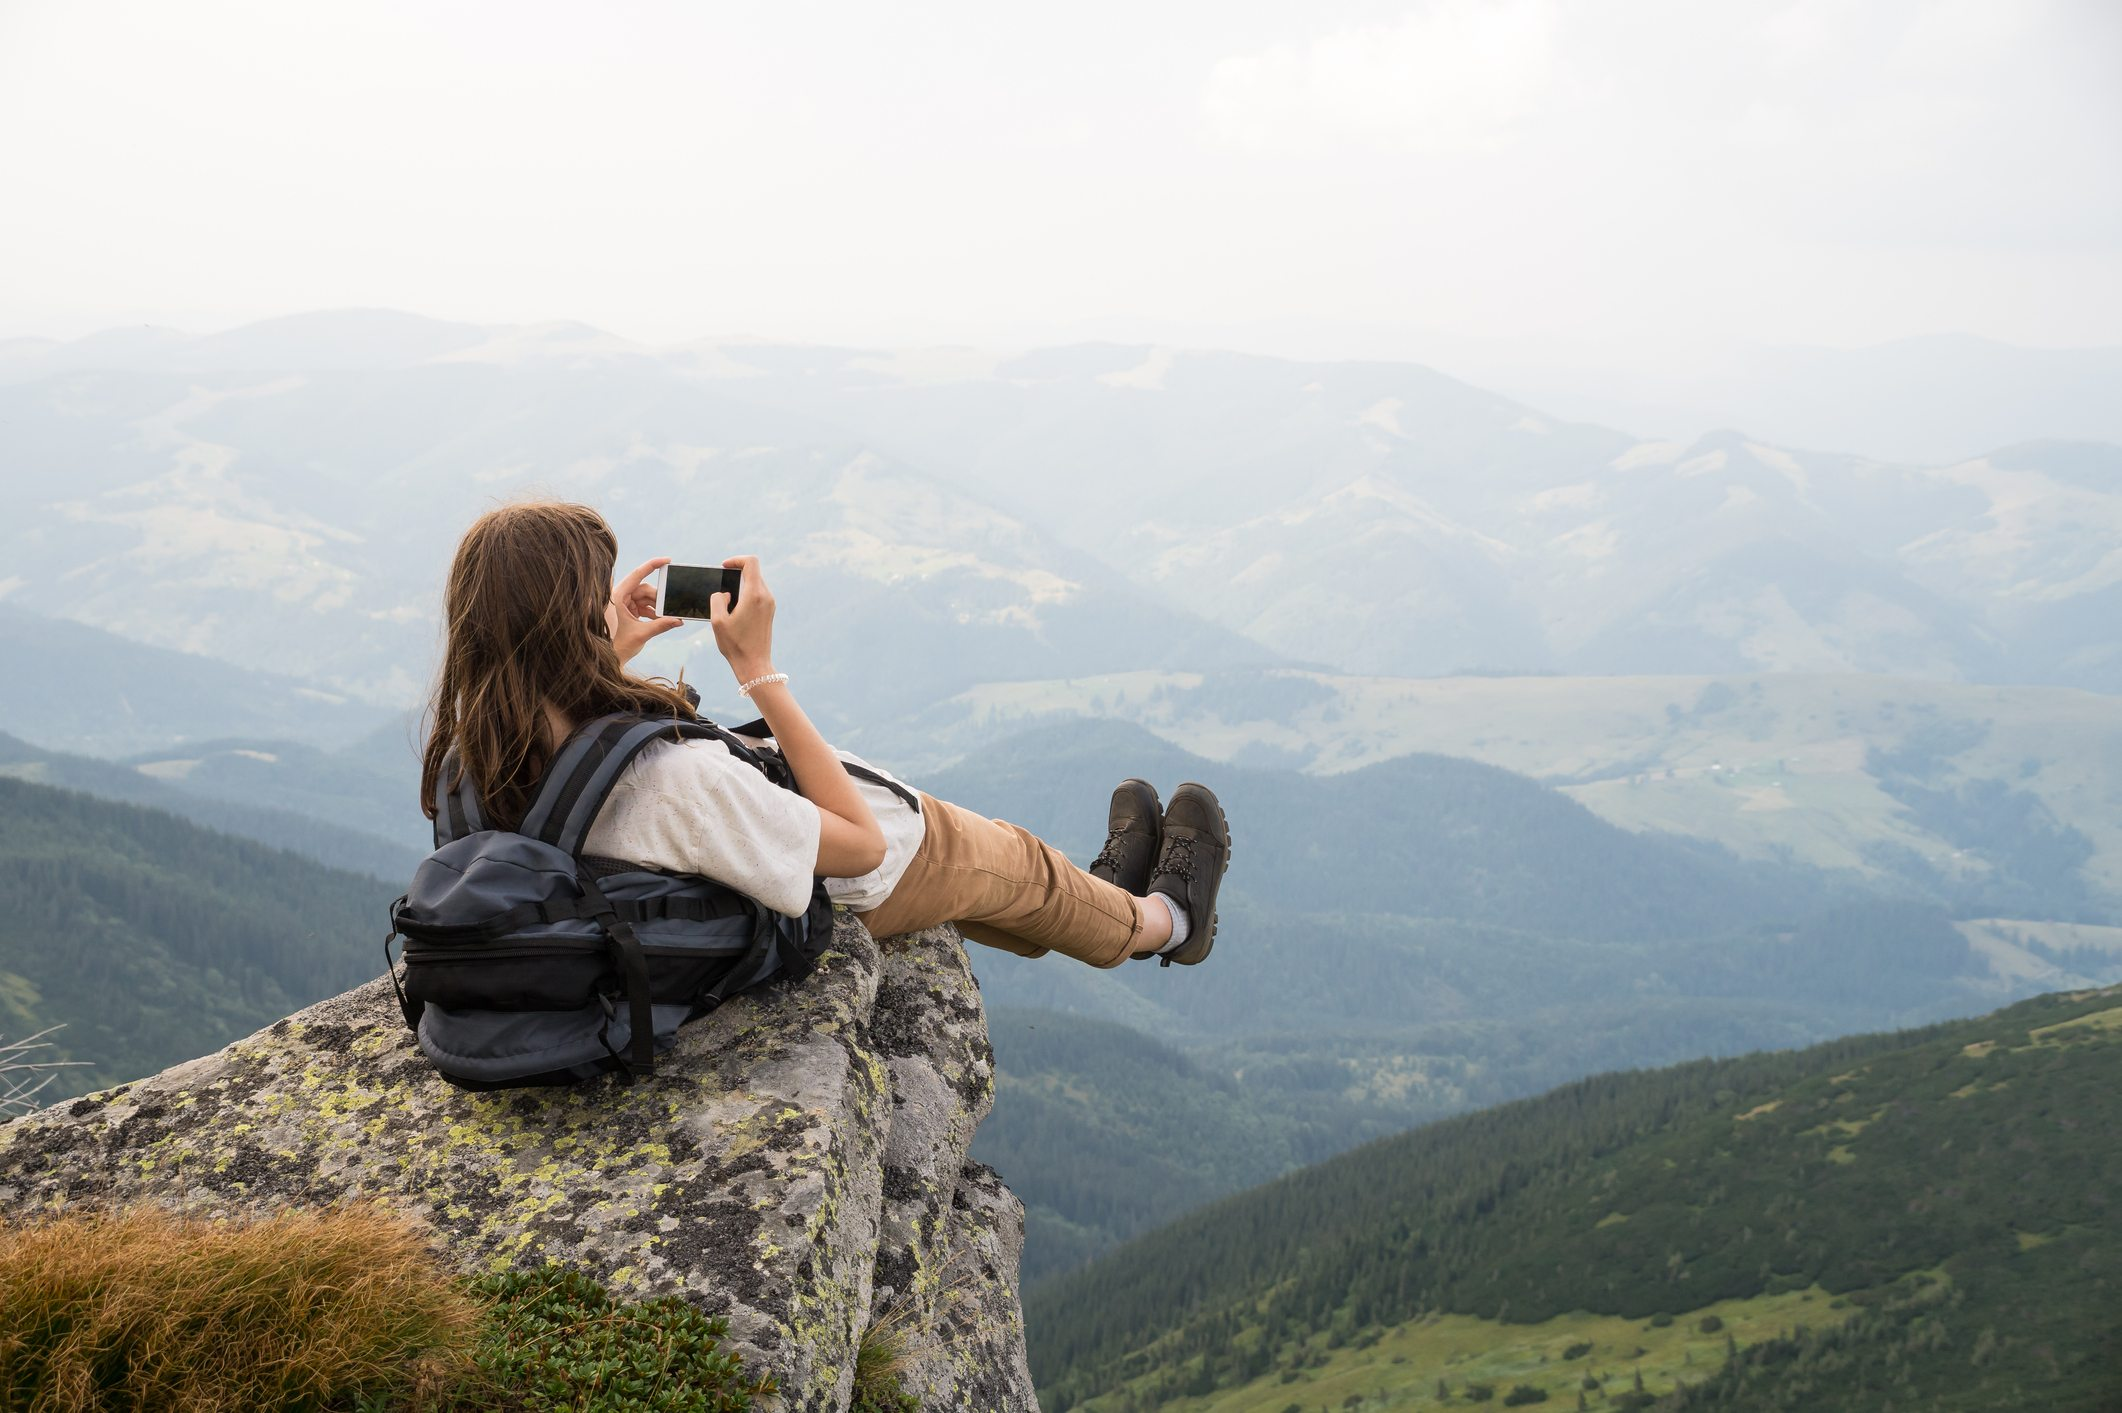 Female tourist takes photo of legs with cell phone from top of the mountain cliff